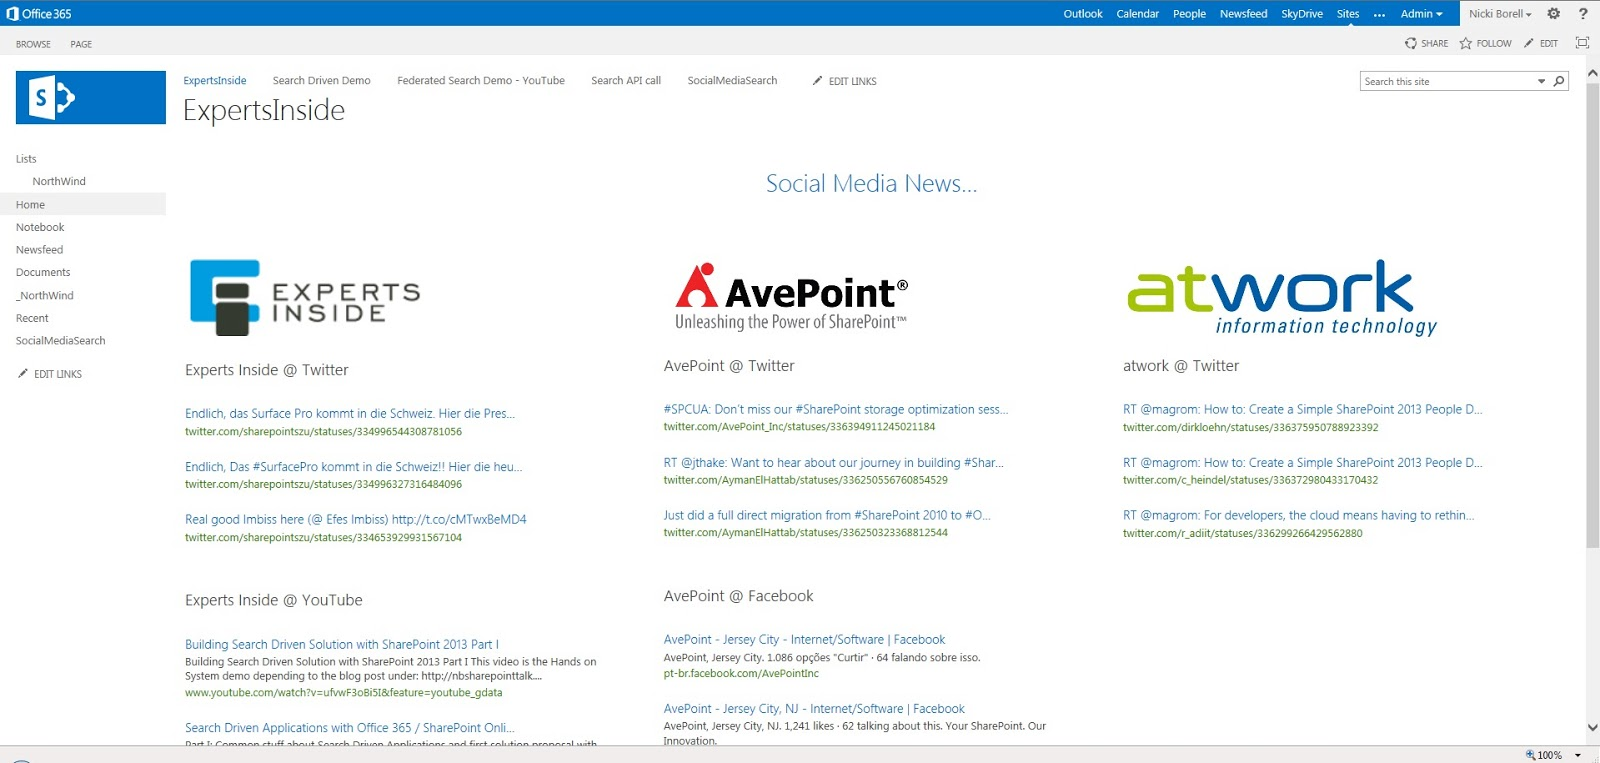 SharePoint Talk: Building Search Driven Solution with SharePoint